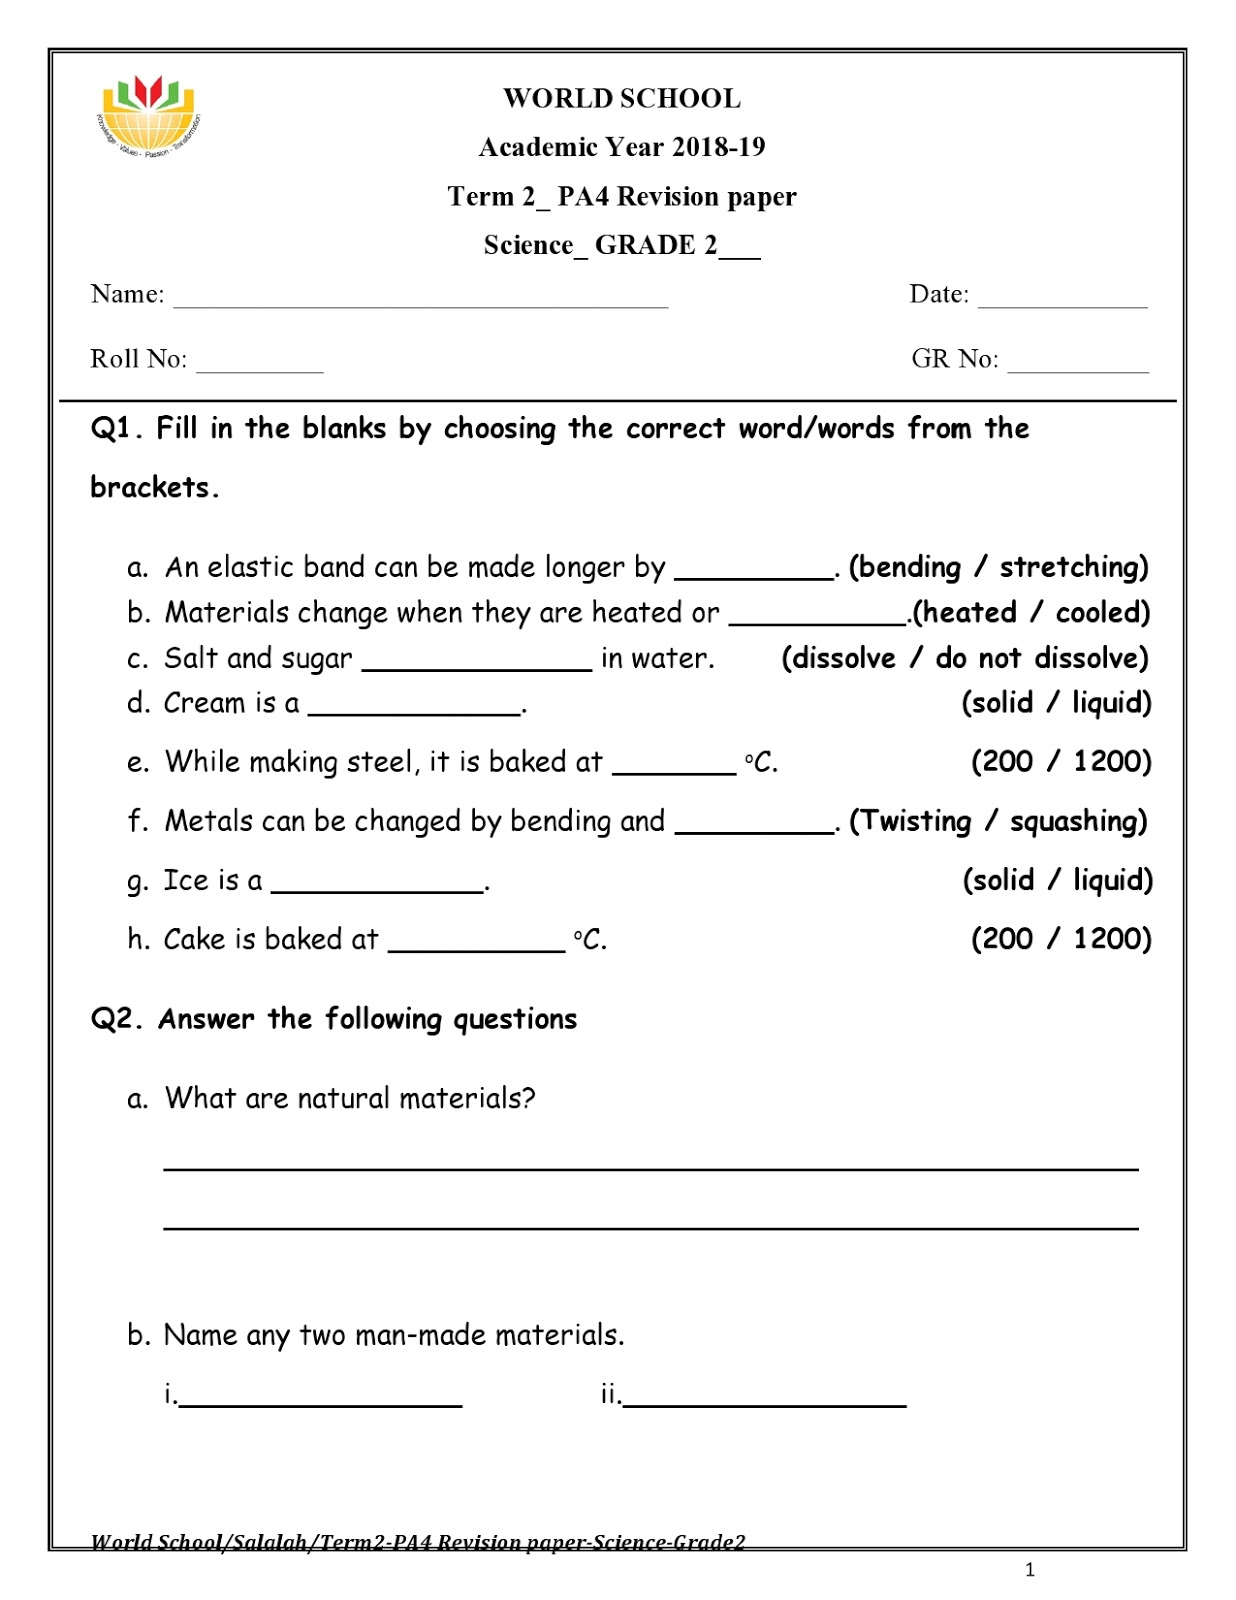 WORLD SCHOOL OMAN Homework For Grade 2 As On 11 04 2019